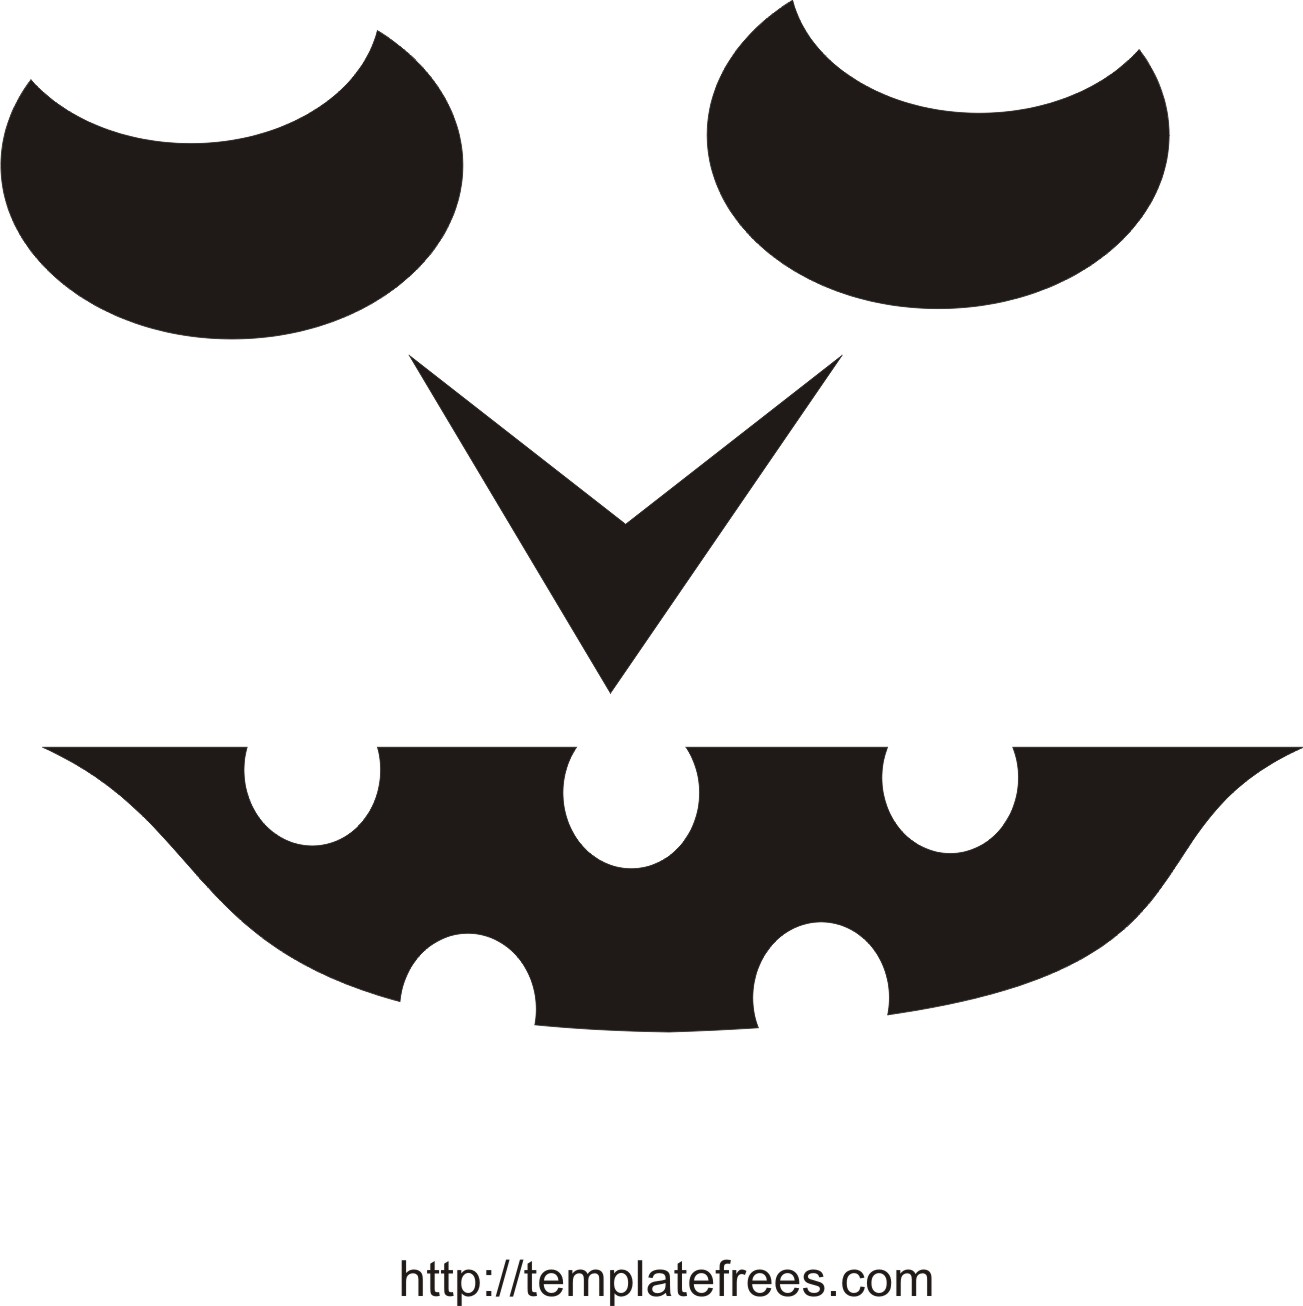 This is an image of Eloquent Pumpkin Carving Designs Free Printable